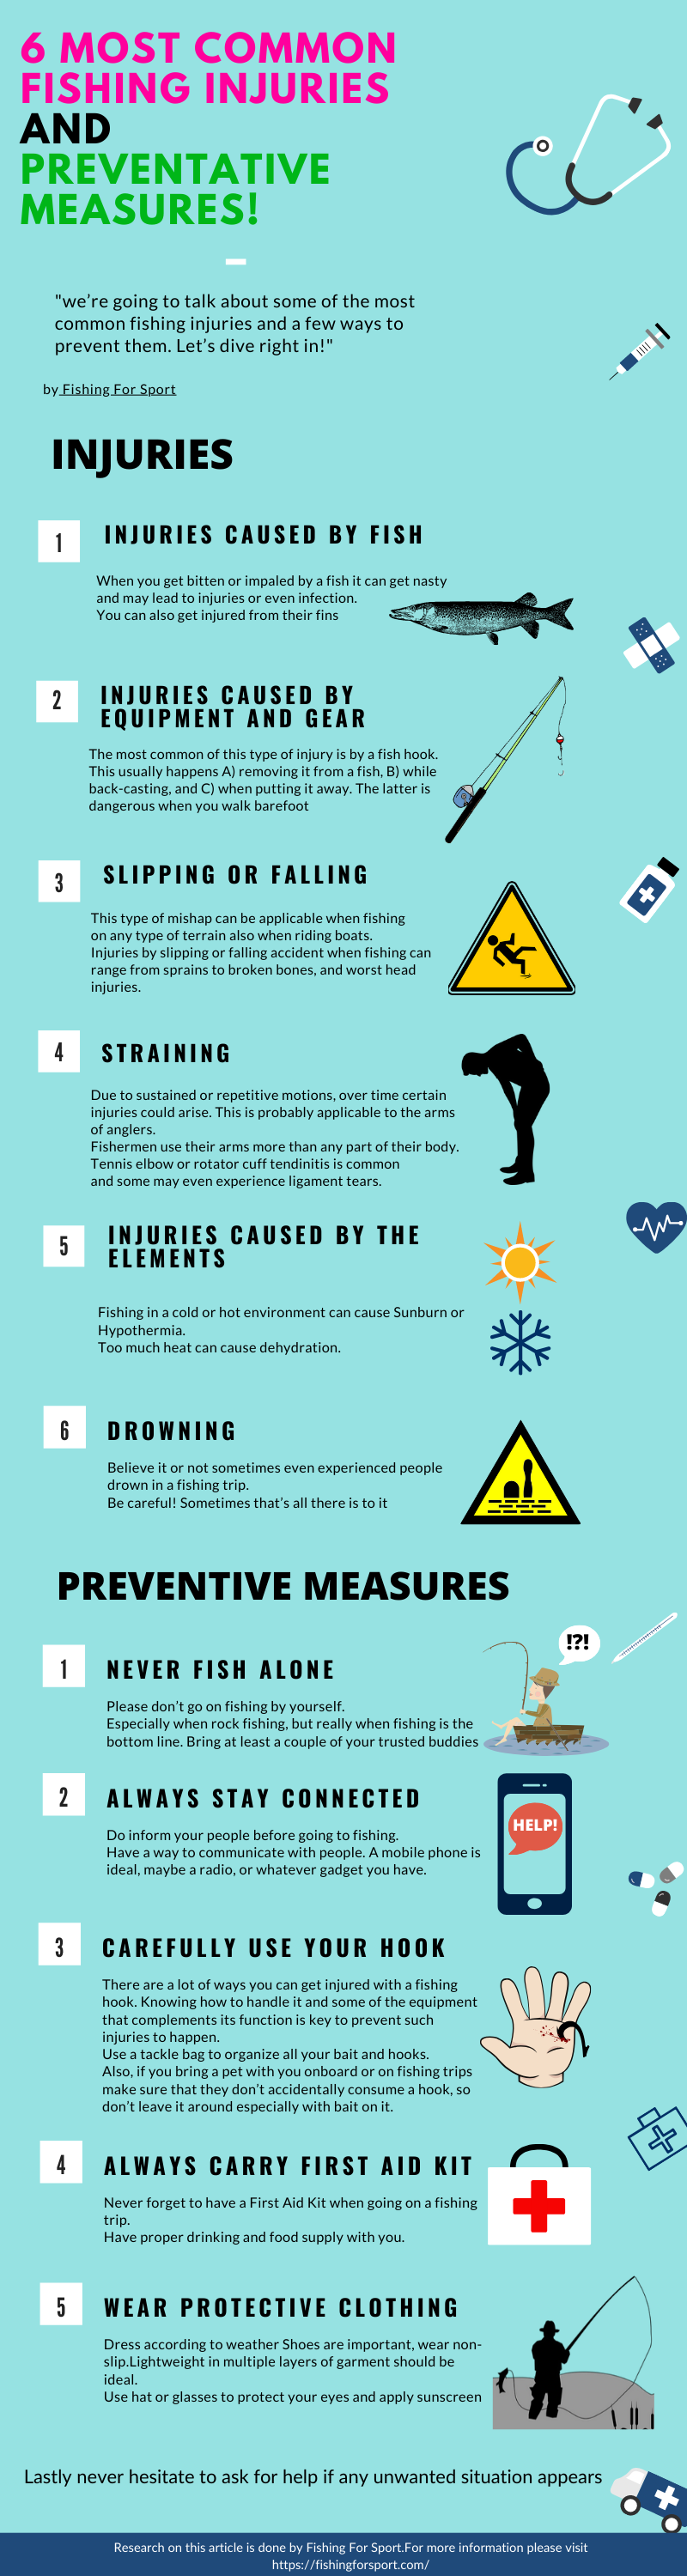 6 Most Common Fishing Injuries and Preventative Measures!